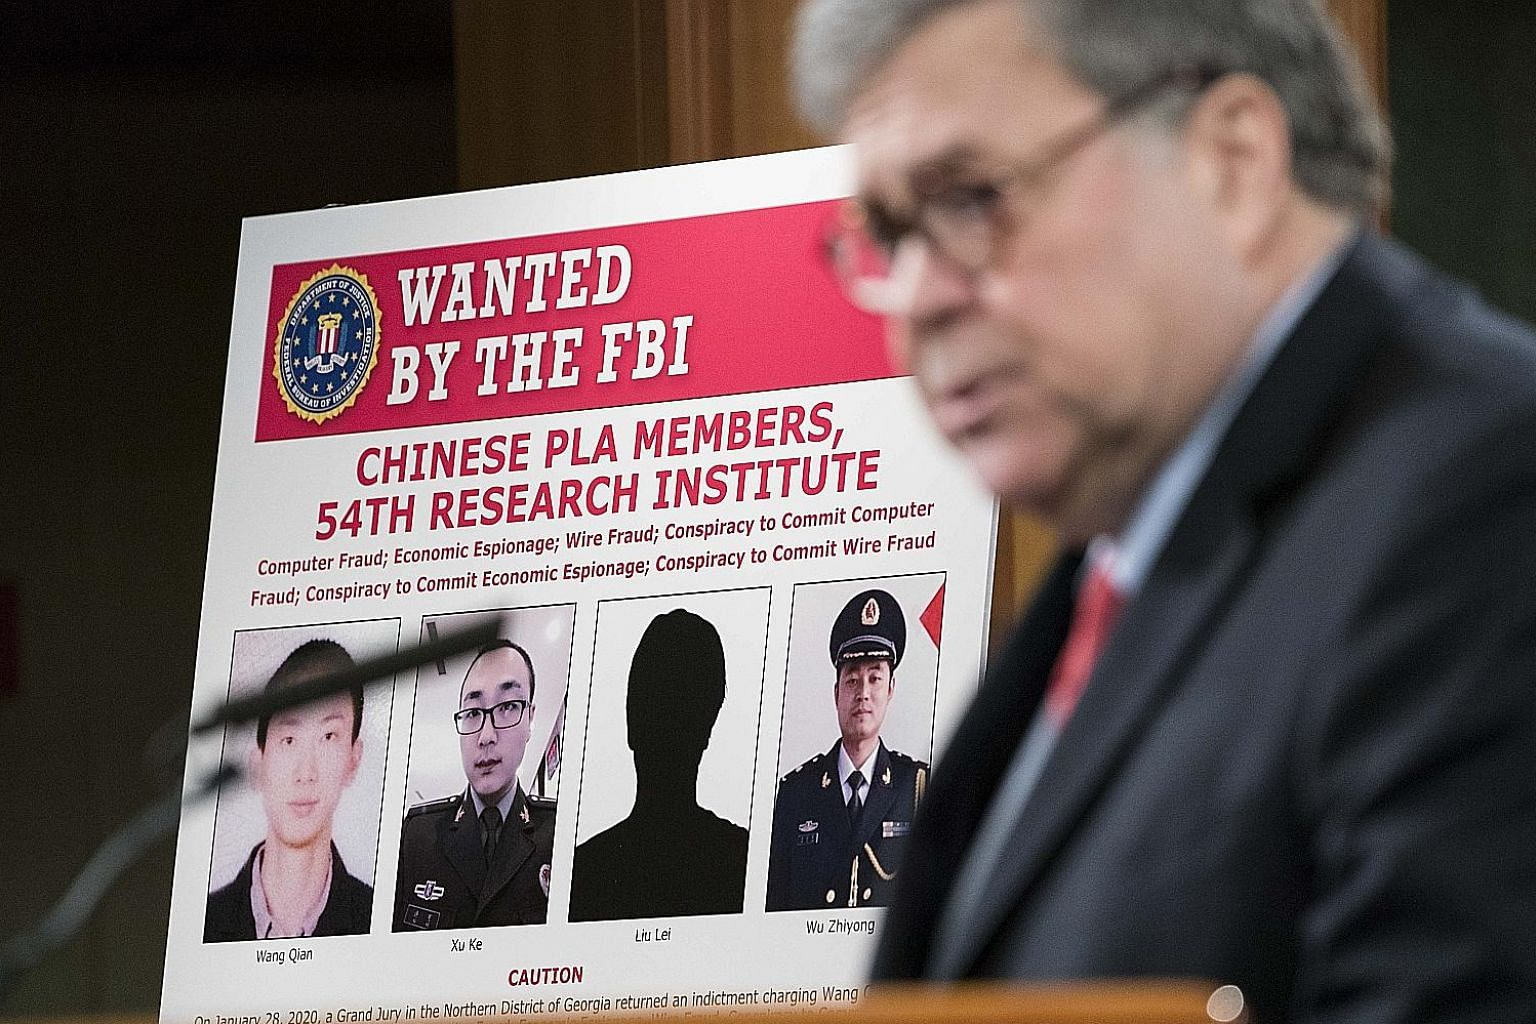 Attorney-General William Barr announced the indictments of the Chinese Liberation Army members in Washington on Monday. PHOTO: AGENCE FRANCE-PRESSE